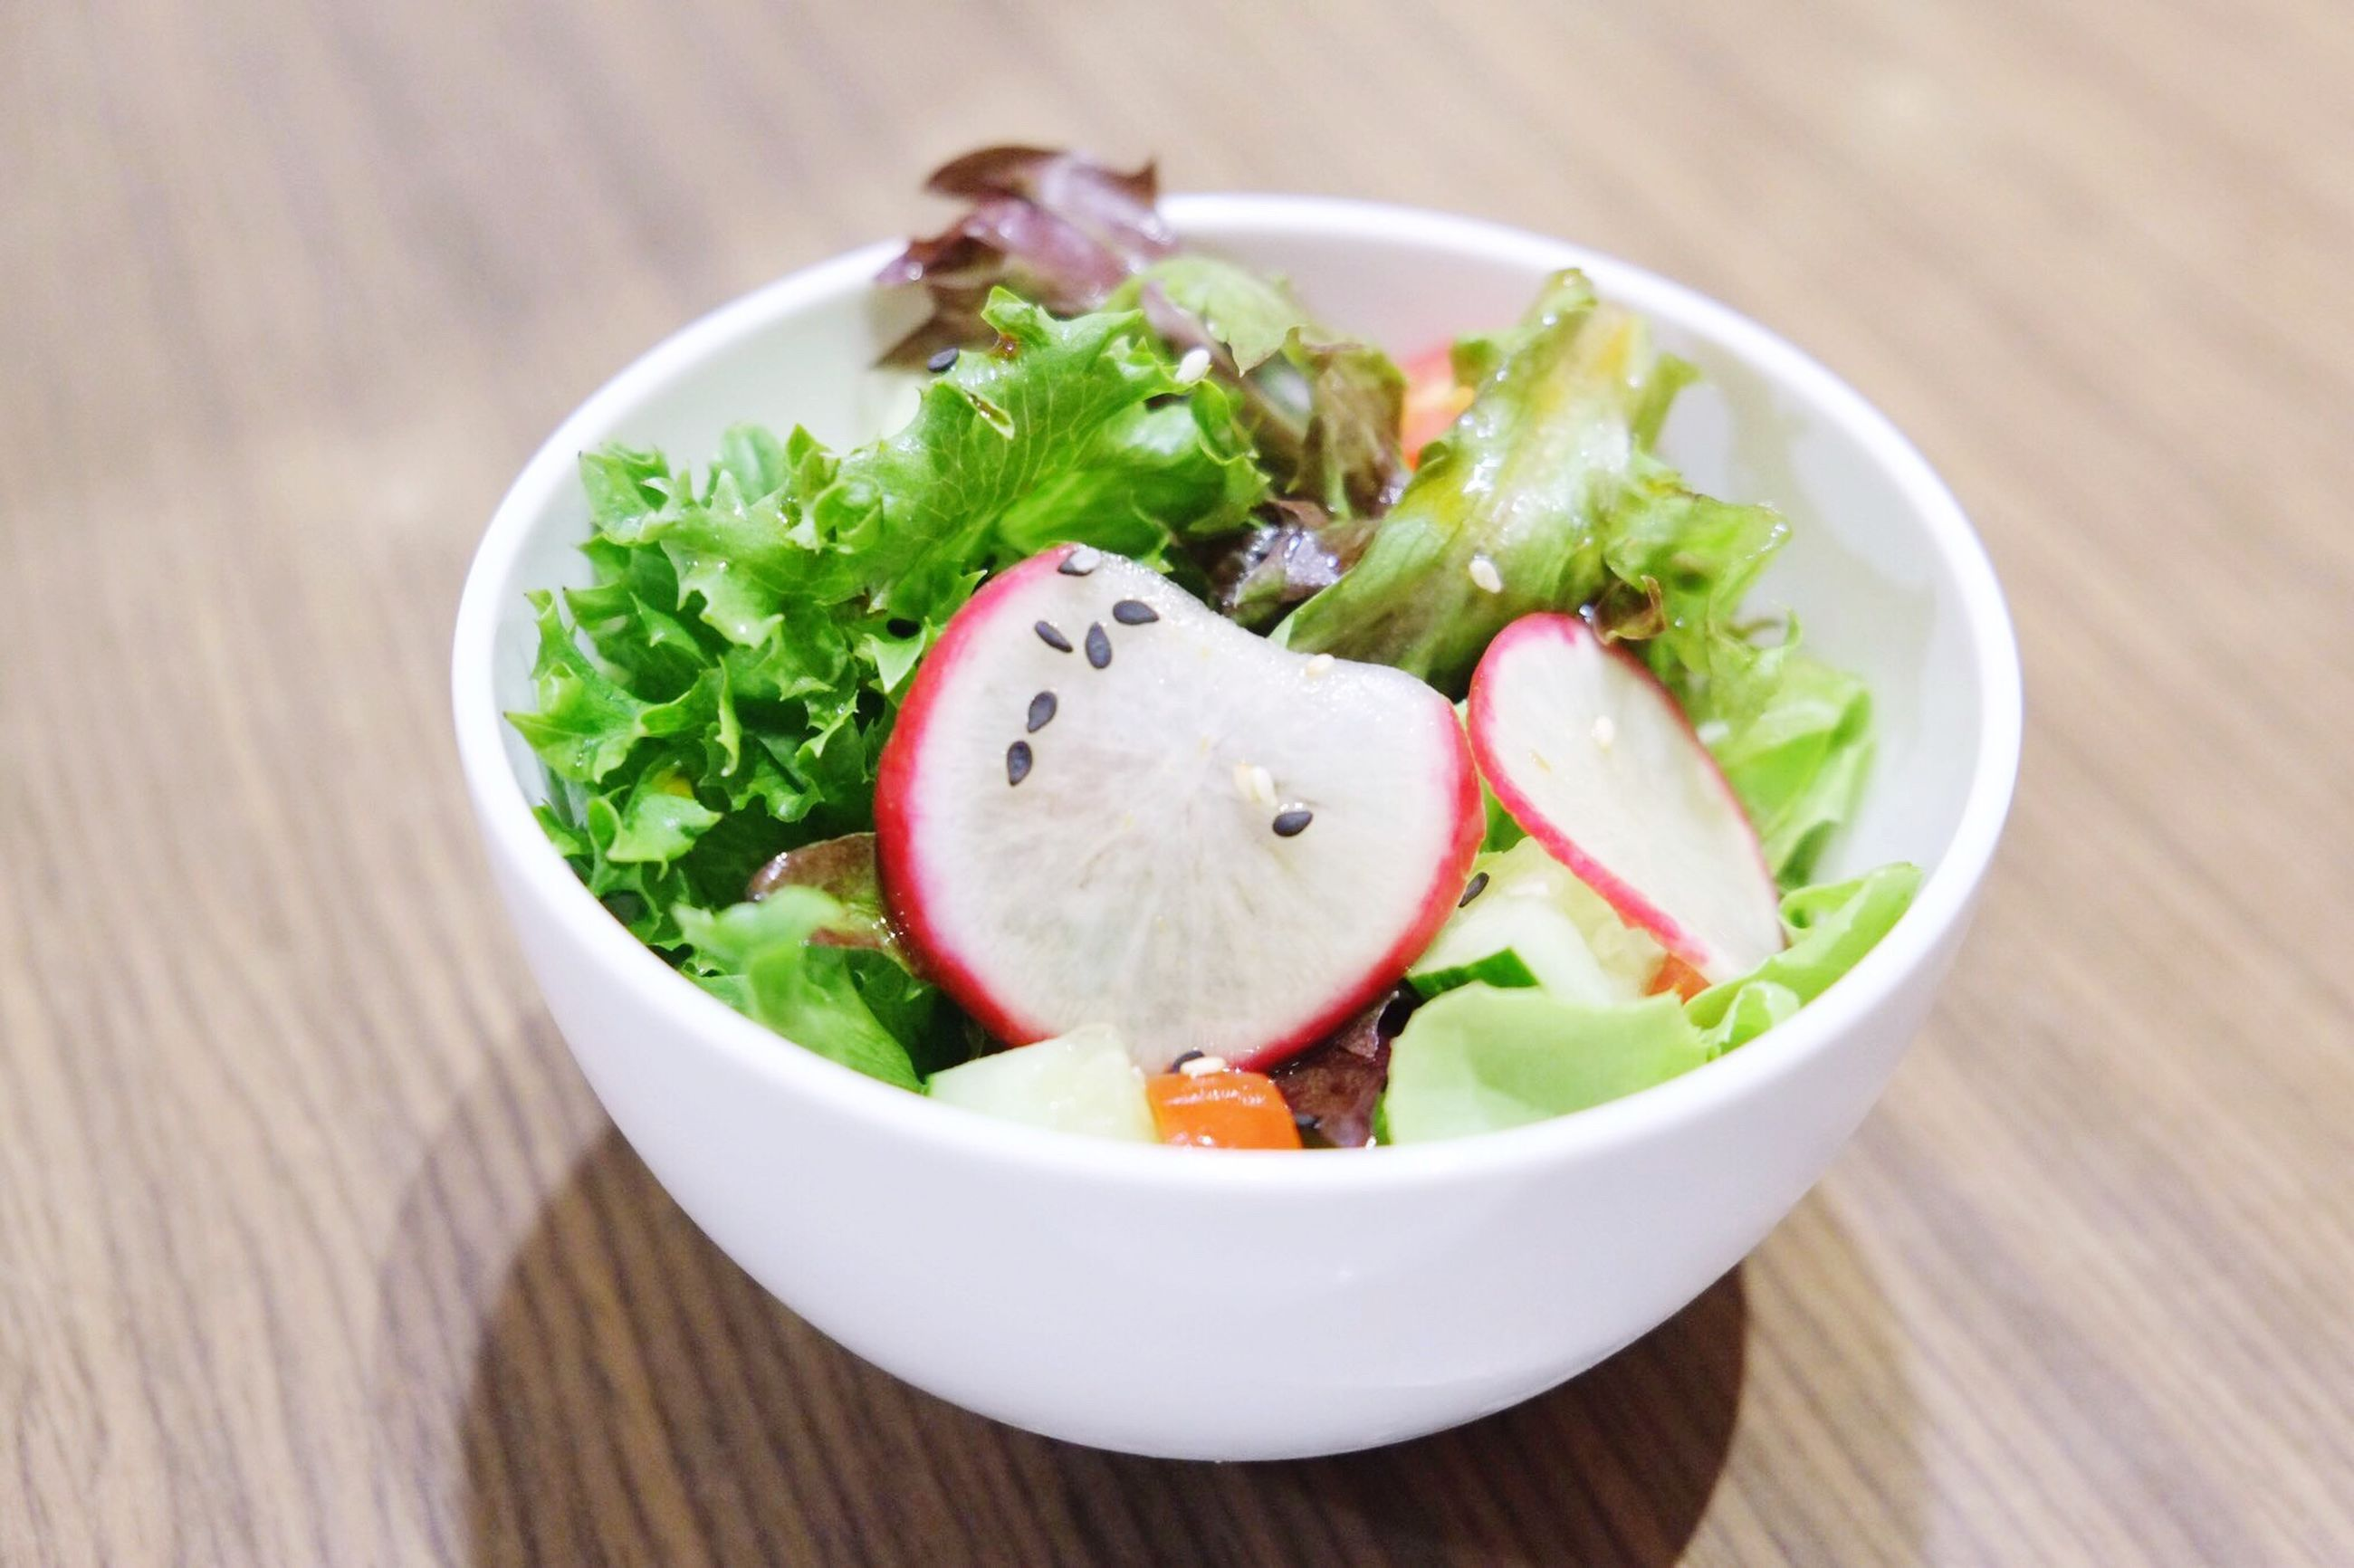 food and drink, food, indoors, freshness, table, healthy eating, plate, ready-to-eat, vegetable, meal, selective focus, salad, appetizer, serving size, chopped, arugula, focus on foreground, temptation, leaf vegetable, indulgence, garnish, tomato, salad bowl, vegetarian food